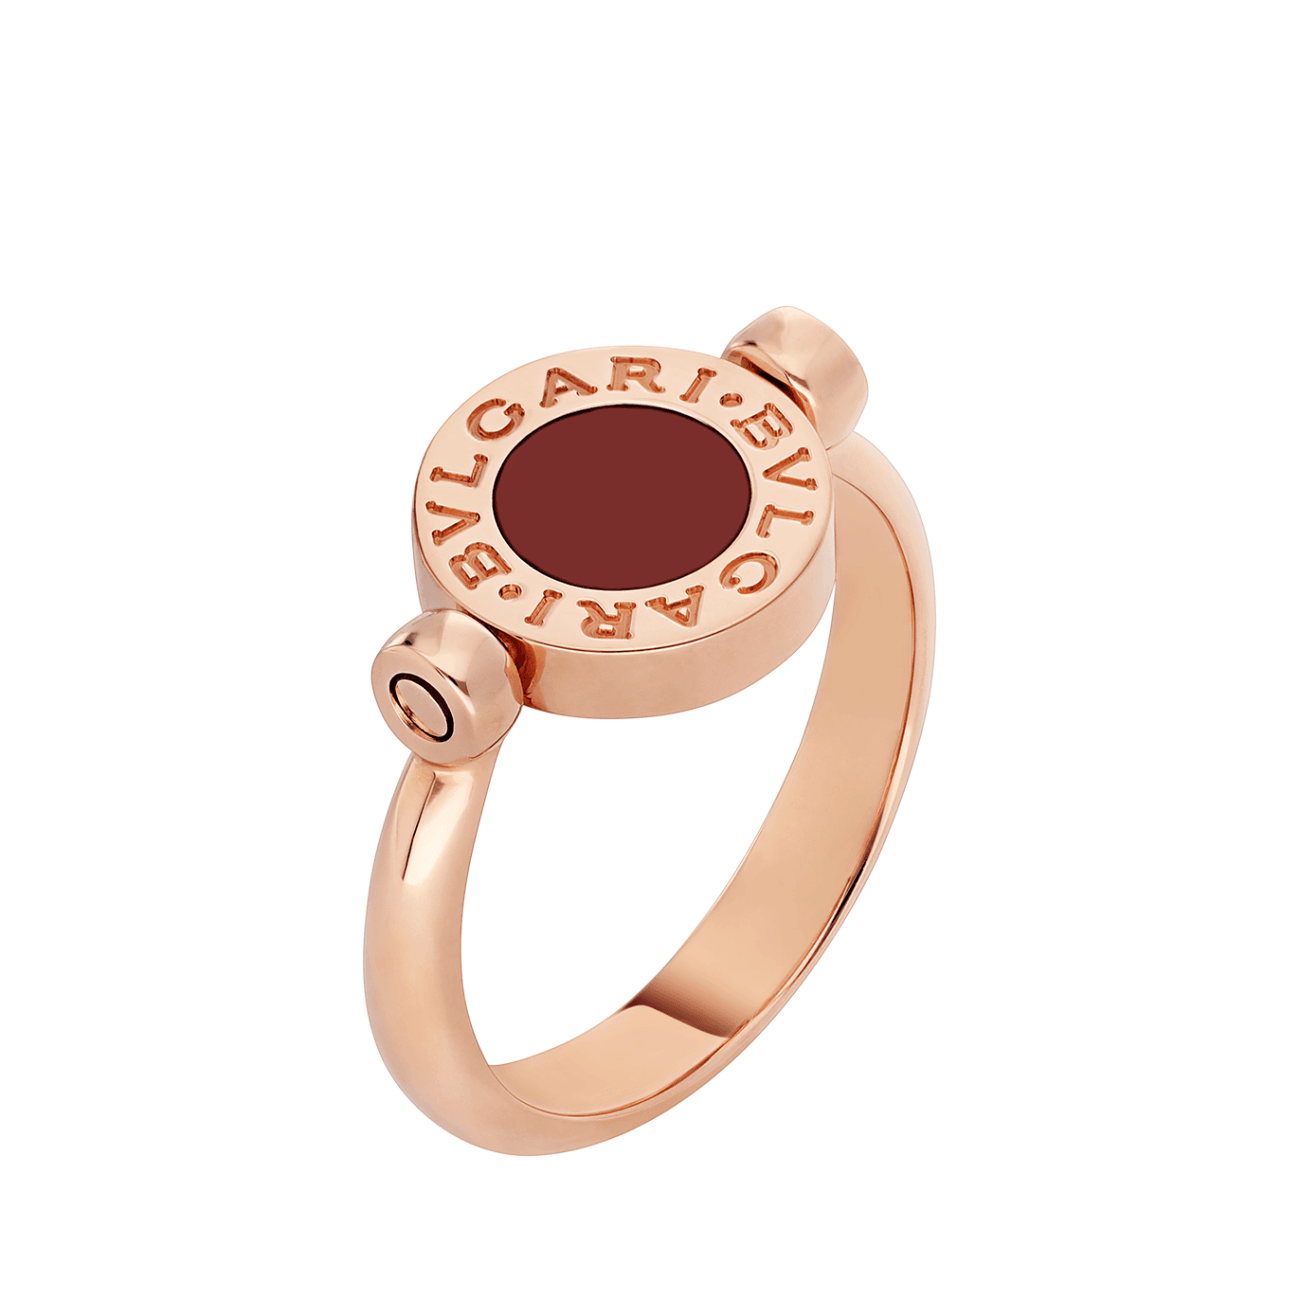 BVLGARI Jewelry - BVLGARI RING 354720 | Manfredi Jewels